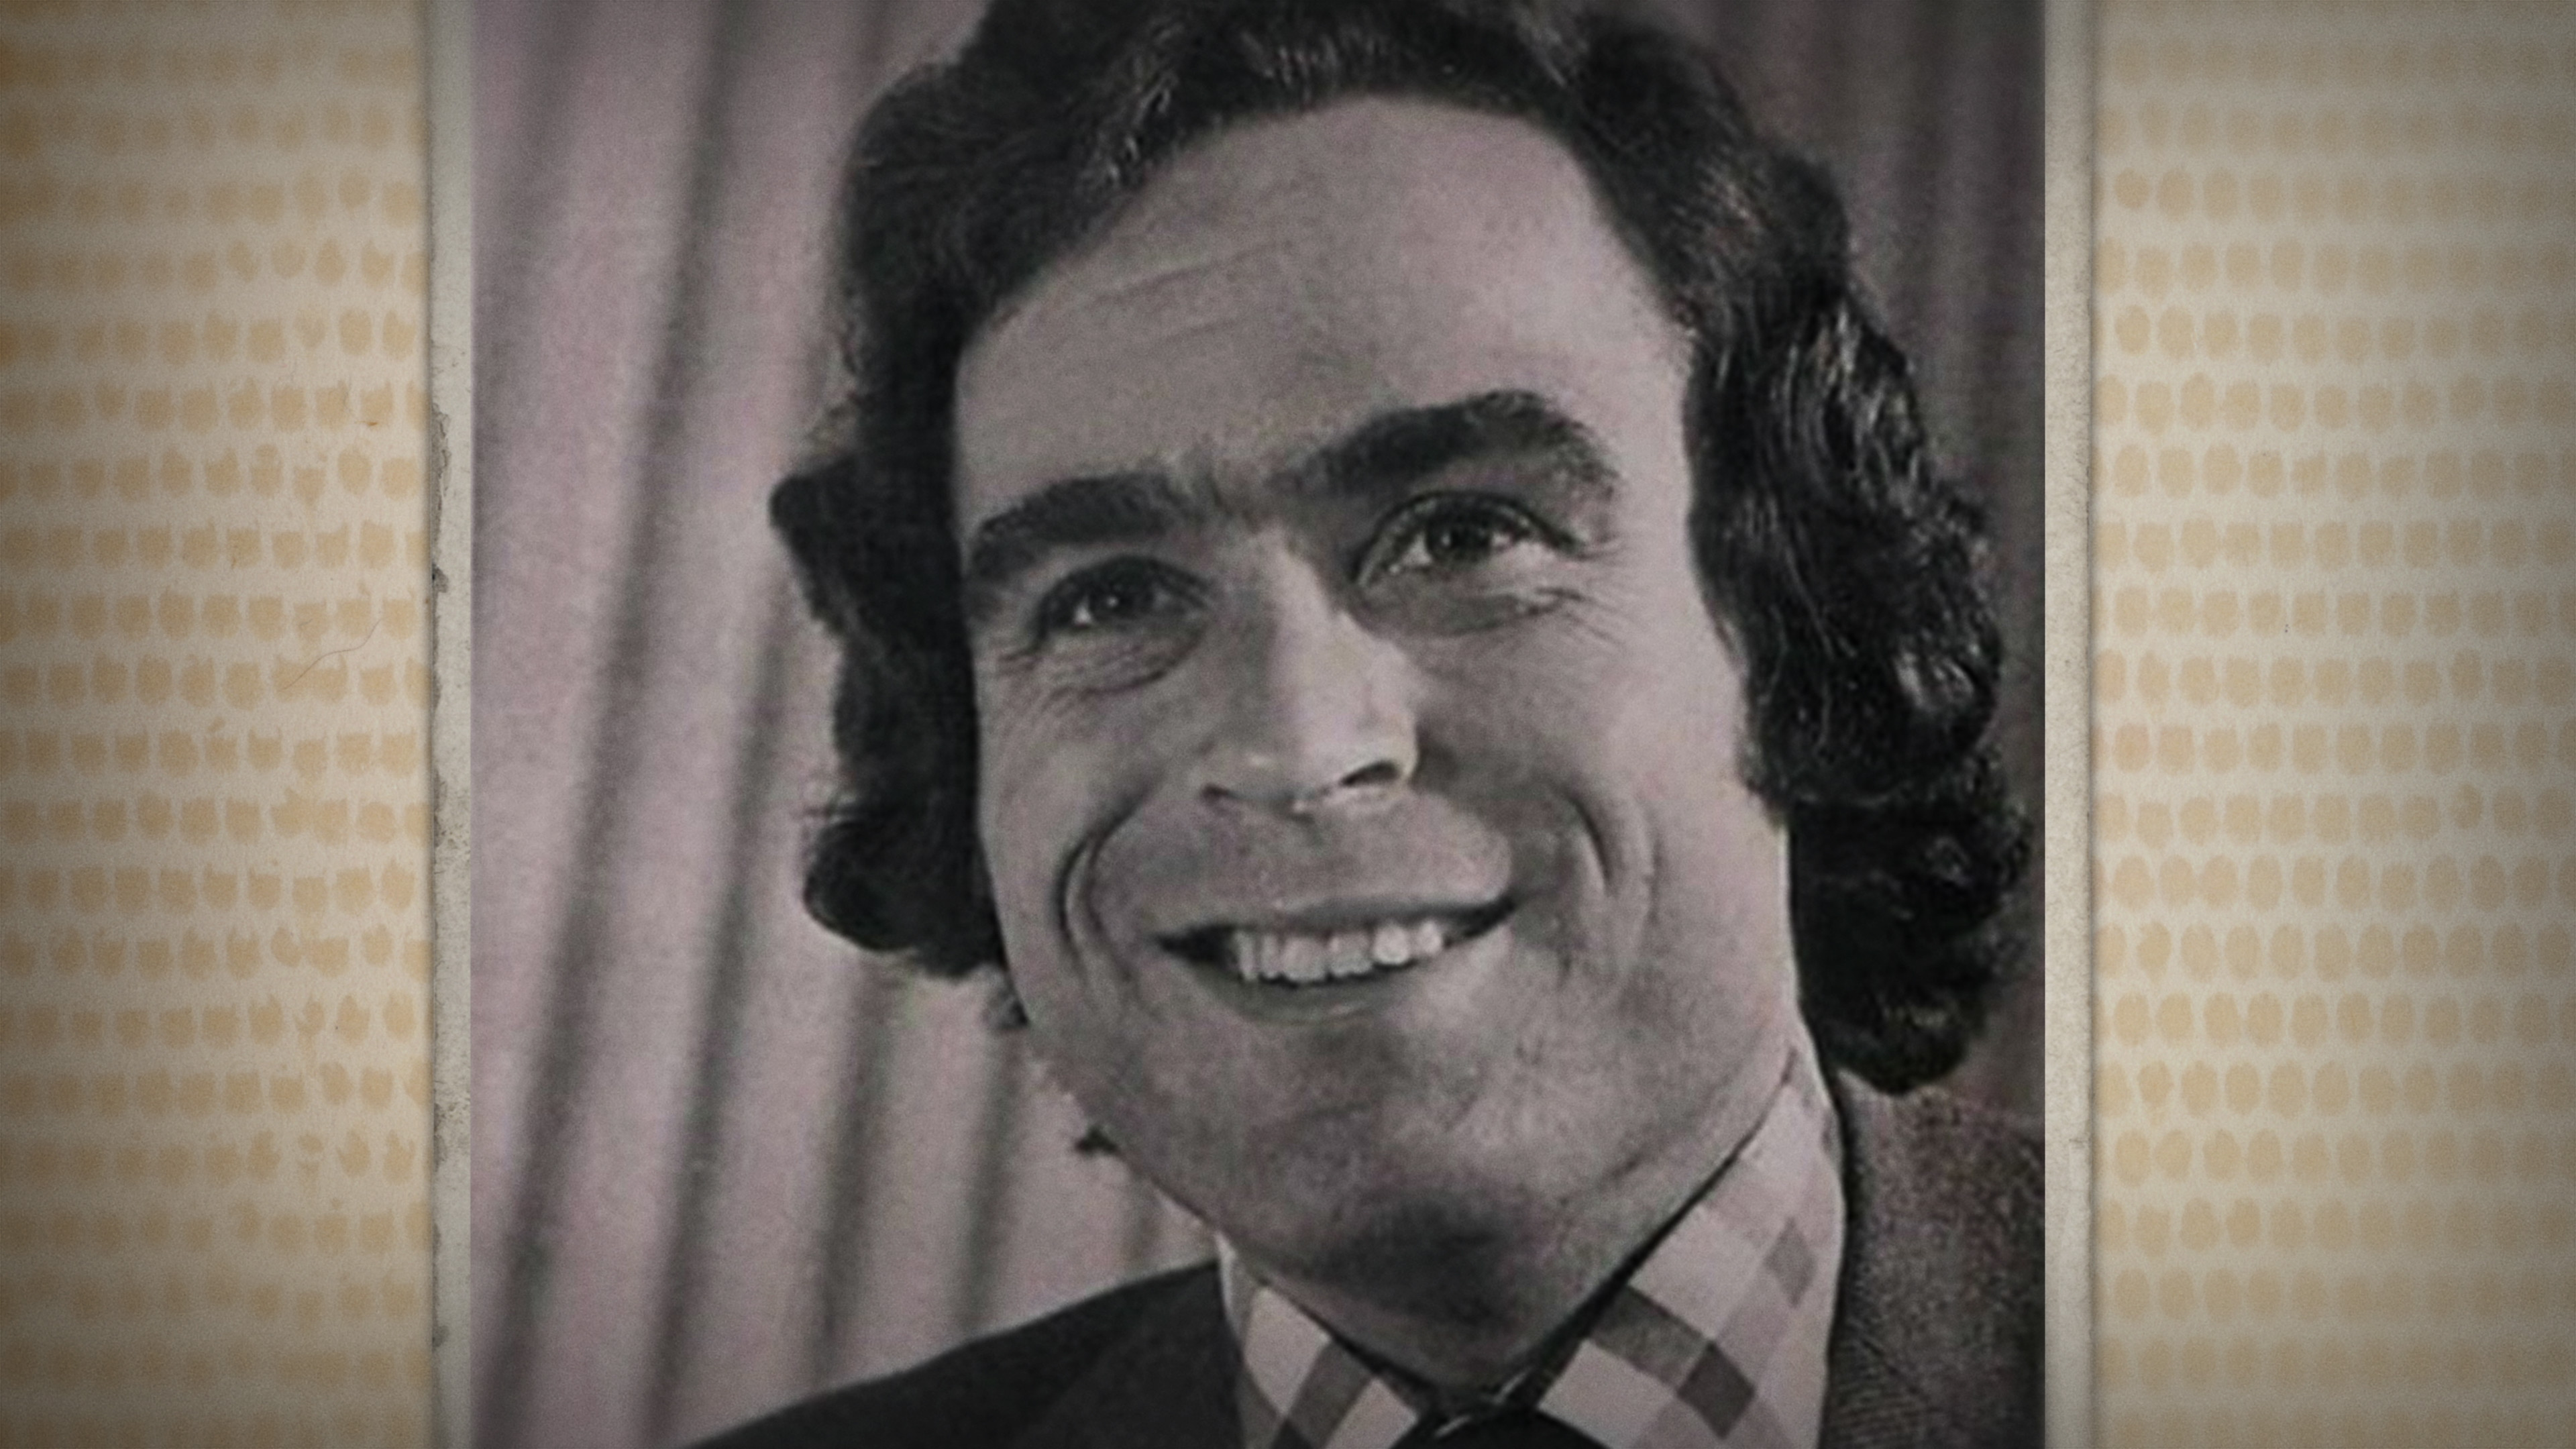 Murderers, Mayhem, And The Mixed Reception To The Return Of Ted Bundy